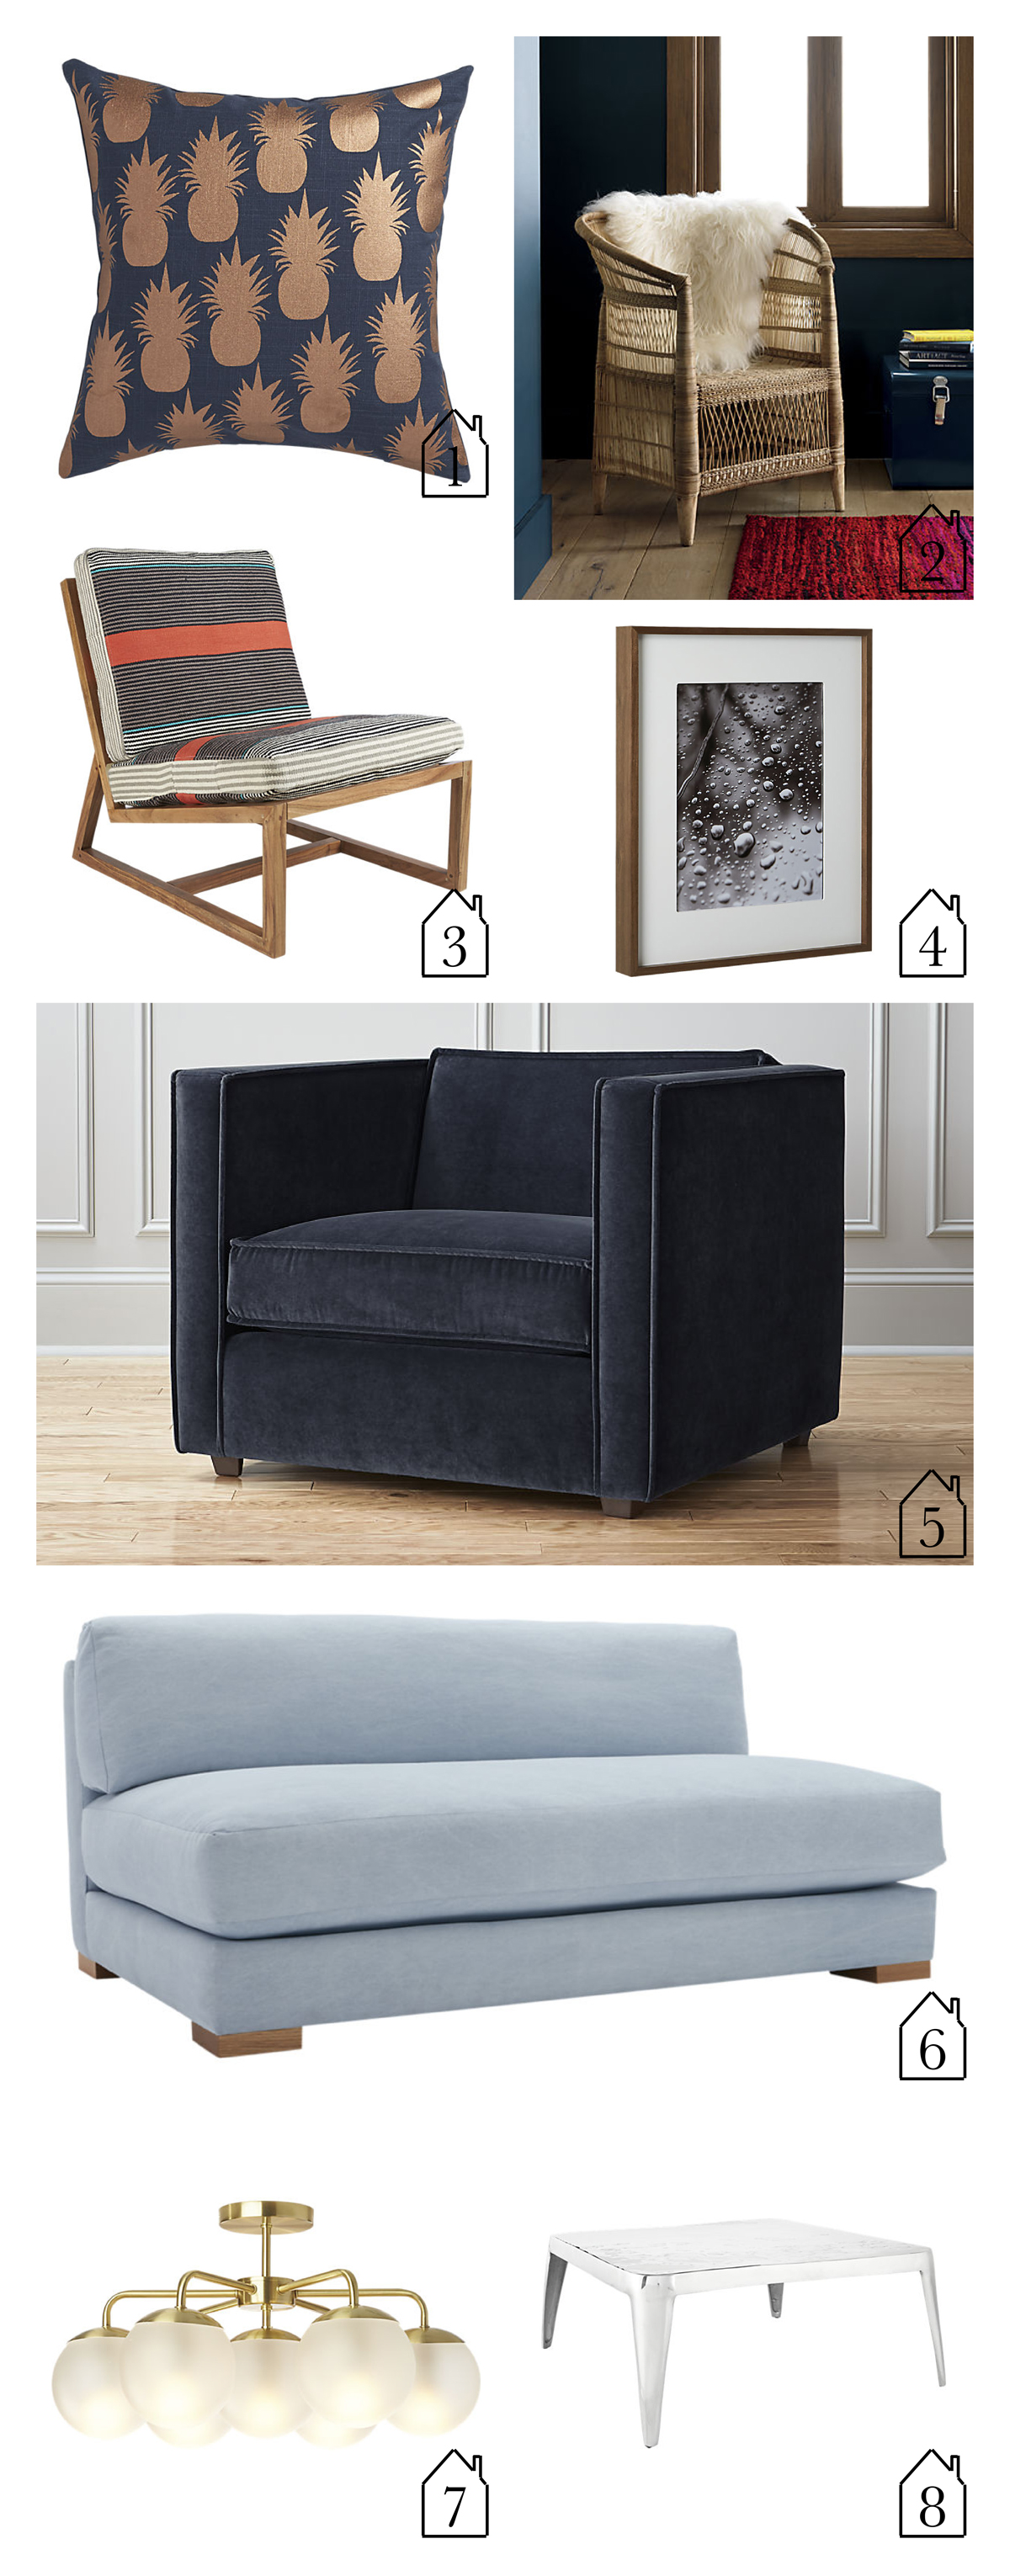 "1.  escape copper pineapples 18"" pillow   2.  woven malawi chair   3.  sidi lounge chair with cushion  4.  walnut picture frames   5.  club chair   6.  piazza apartment sofa   7.  vega flush mount lamp   8.  sterling coffee table"